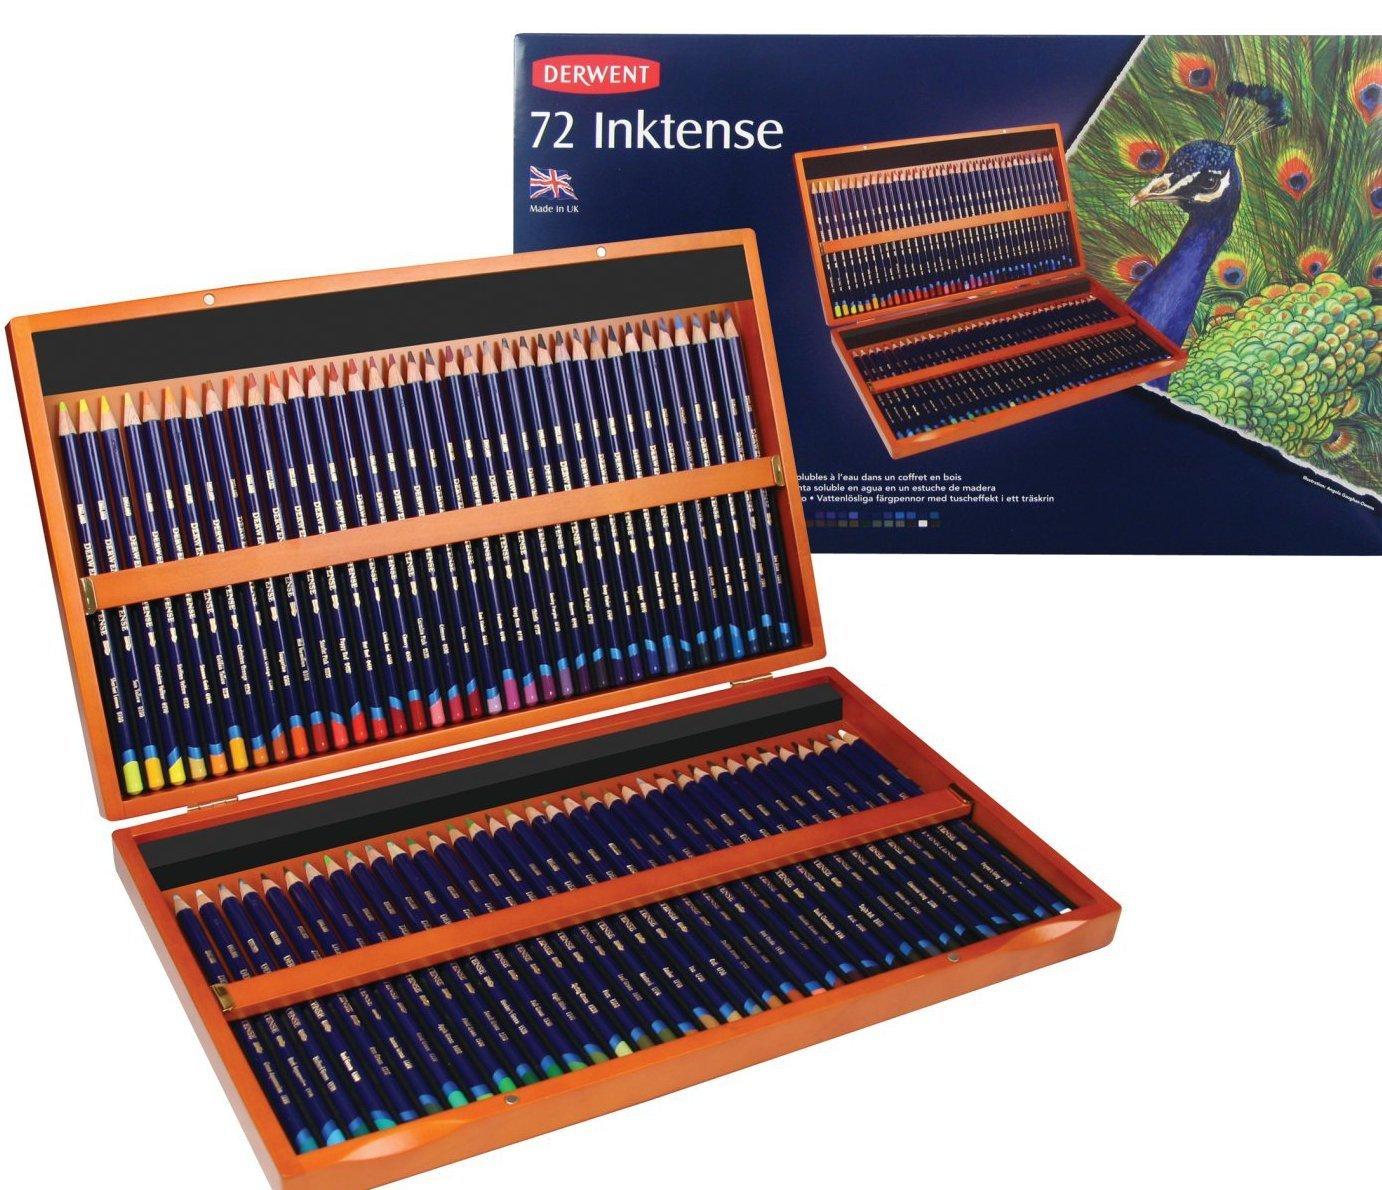 Derwent Colored Pencils, Inktense Ink Pencils, Drawing, Art, Wooden Box, 72 Count (2301844)